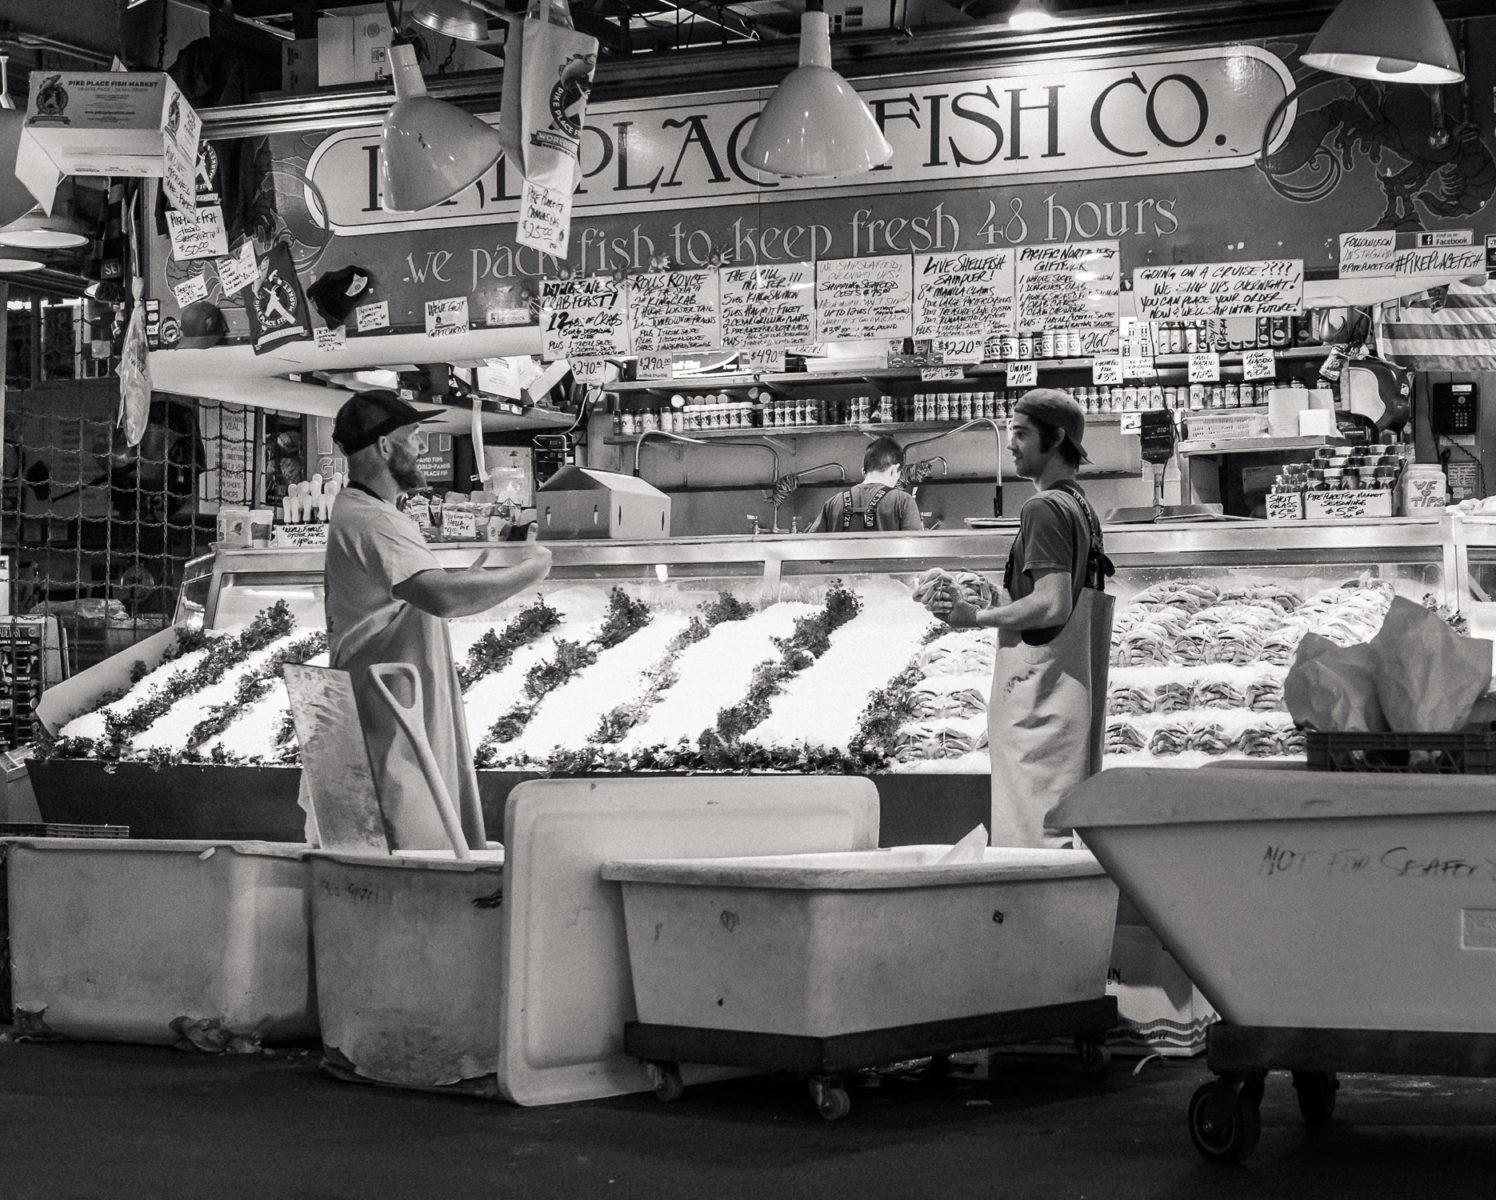 Workers at Pike Place Fish Market setting up in the morning